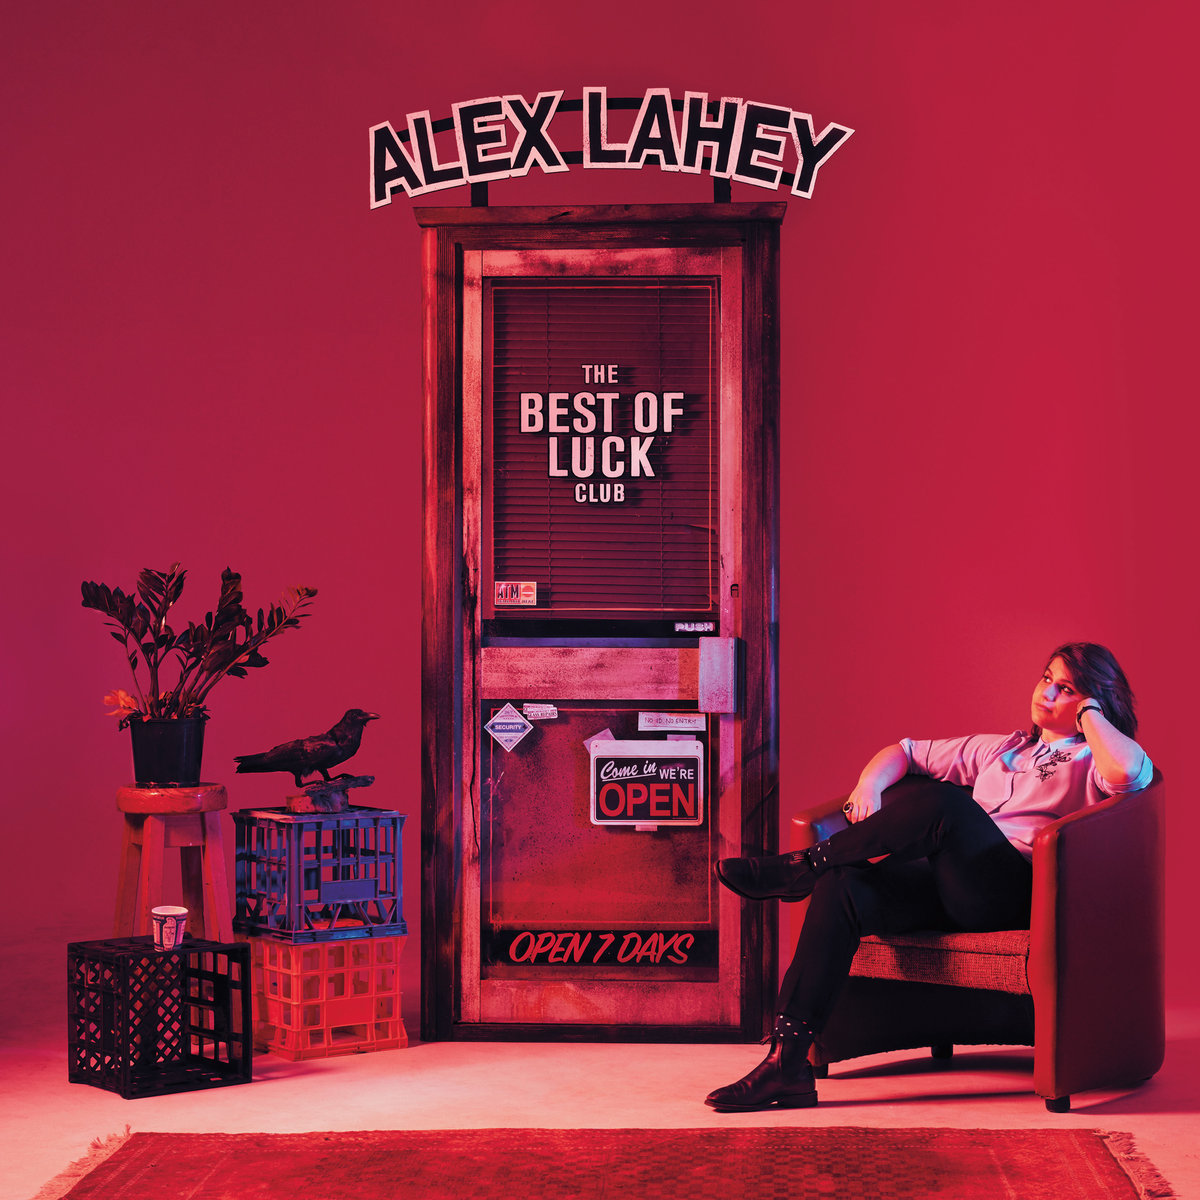 Alex Lehay the best of luck club album cover artwork